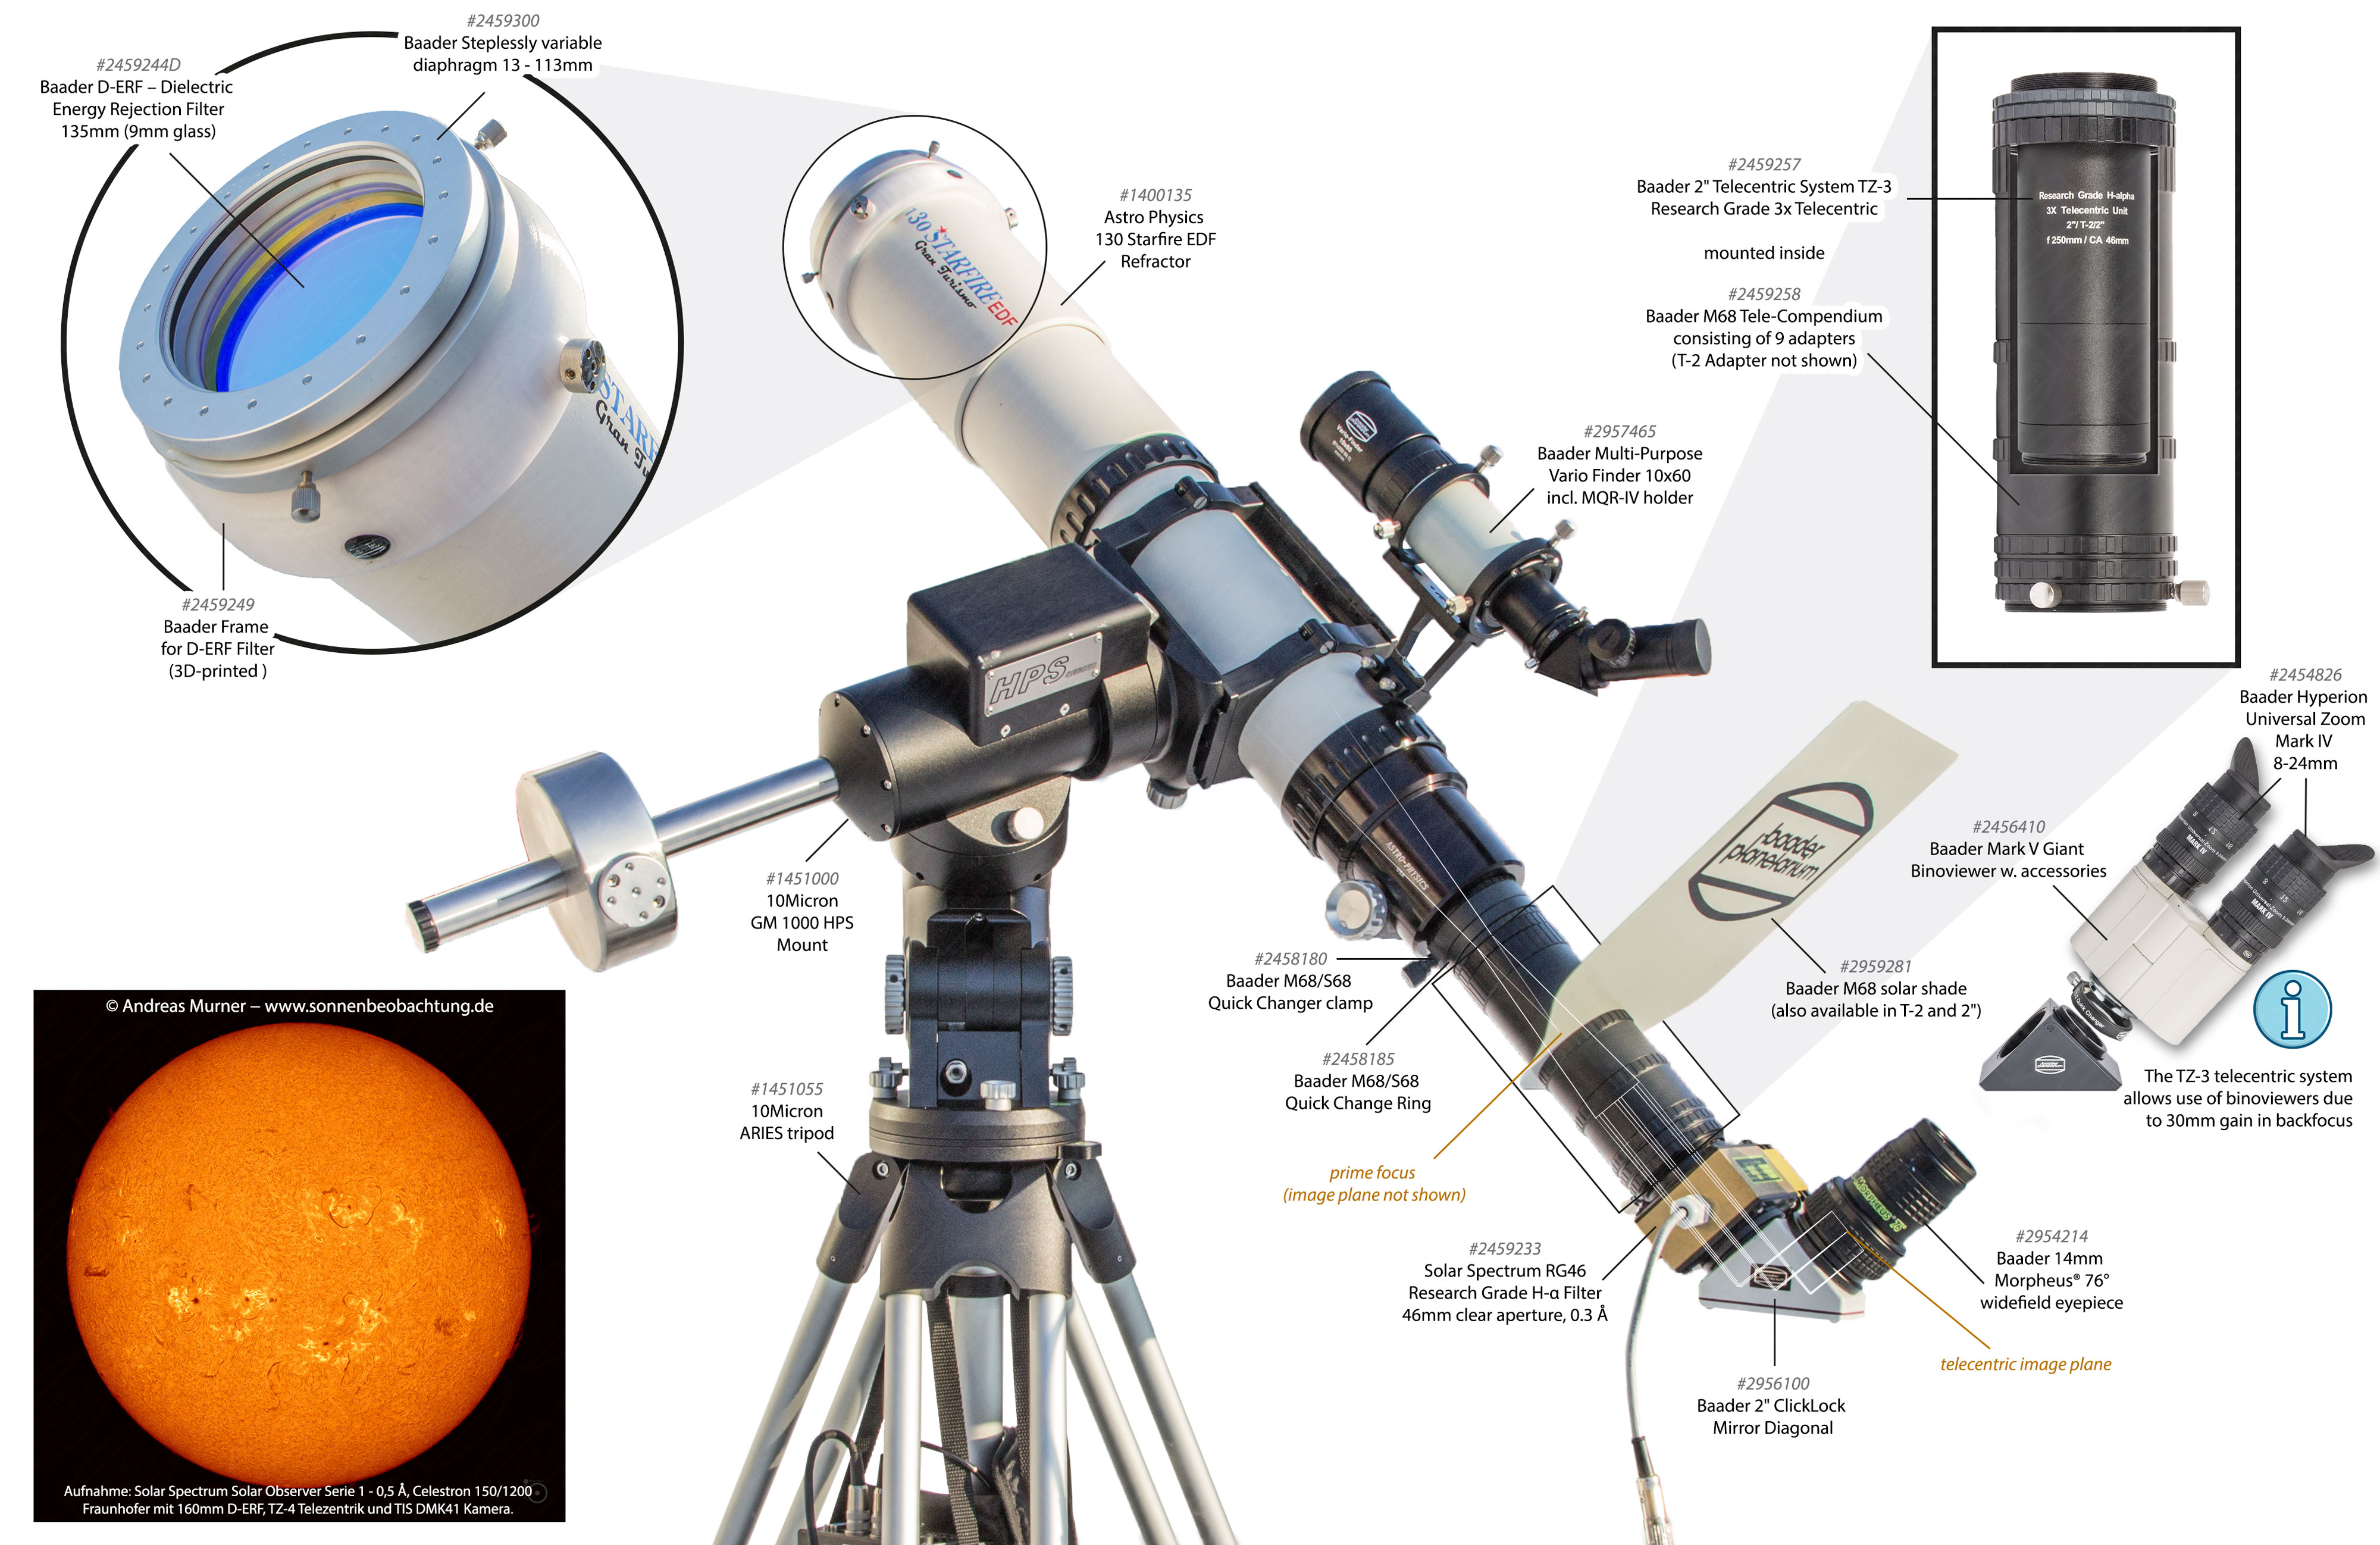 New accessories for H-alpha solar observation / imaging